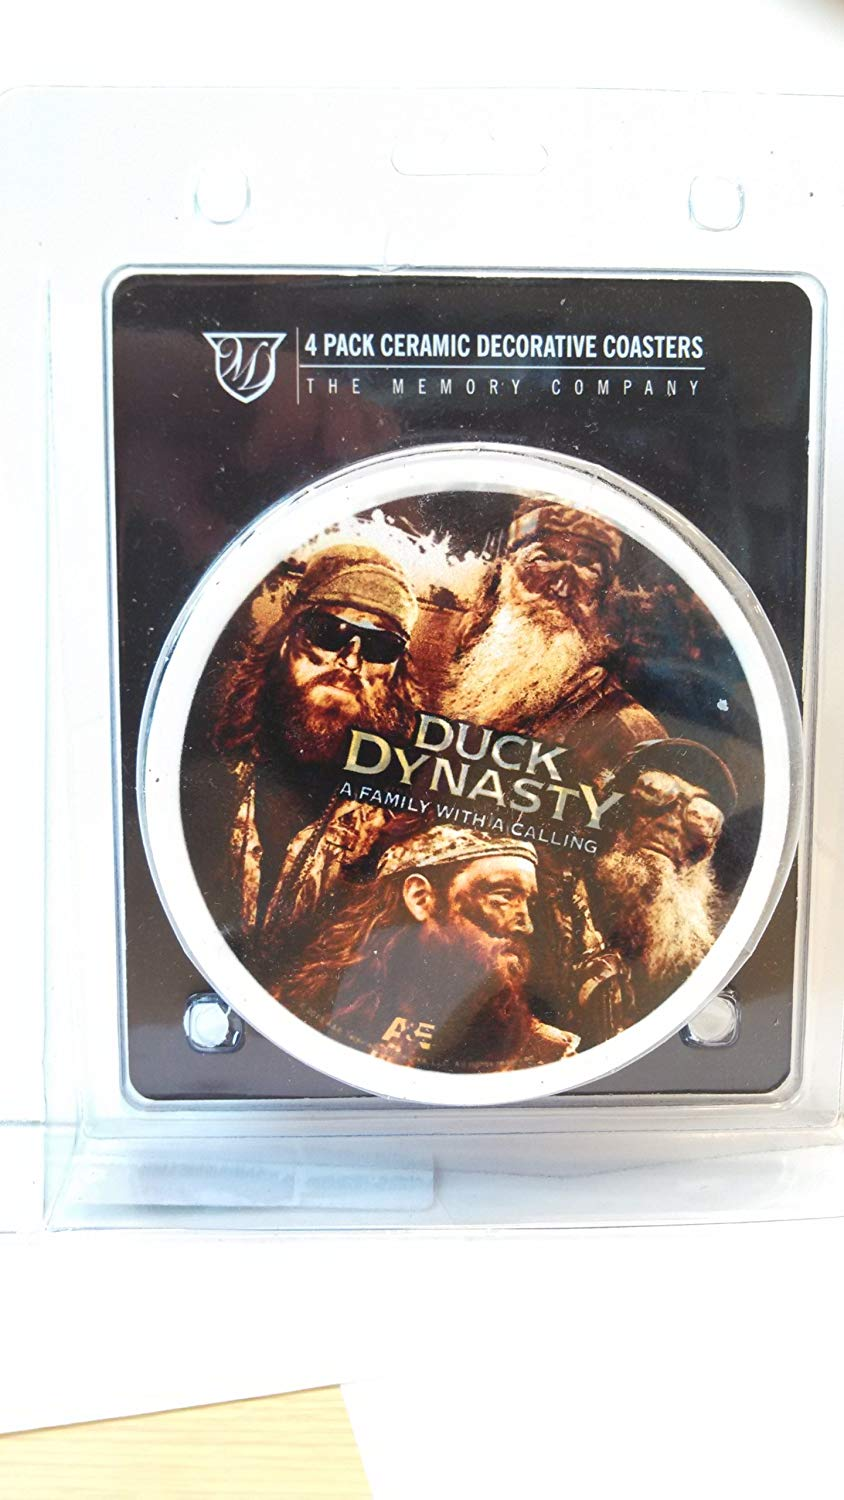 Duck Dynasty 4-Pack Family With A Calling Ceramic Home Coasters